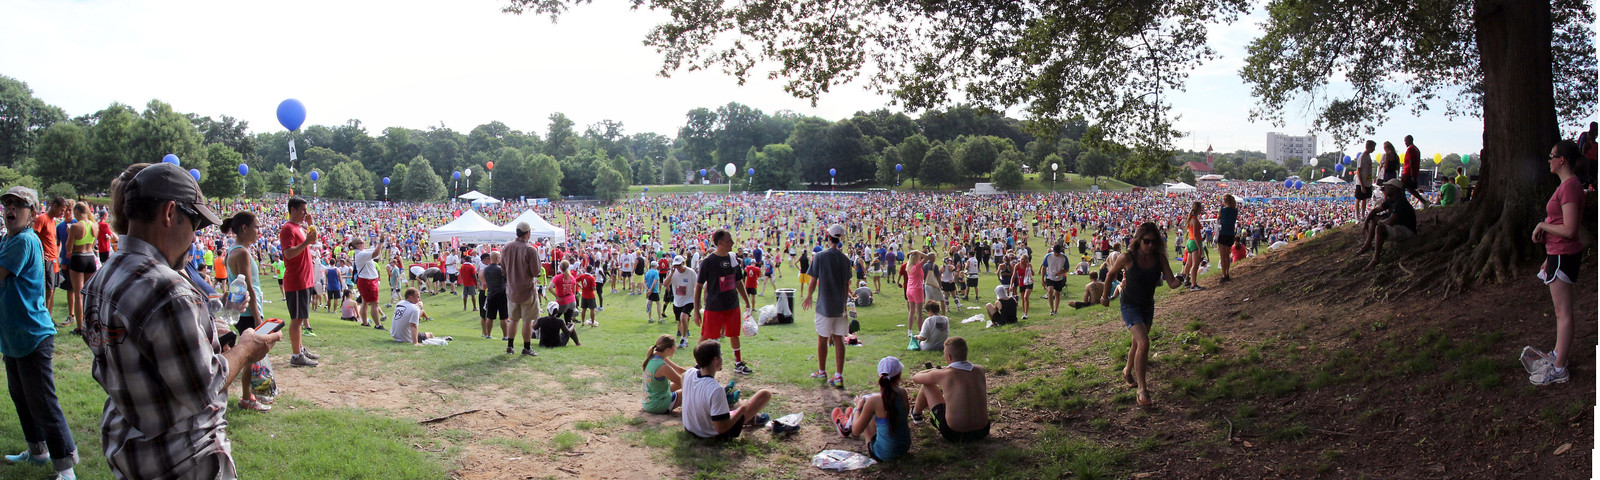 4th of july panorama in the park